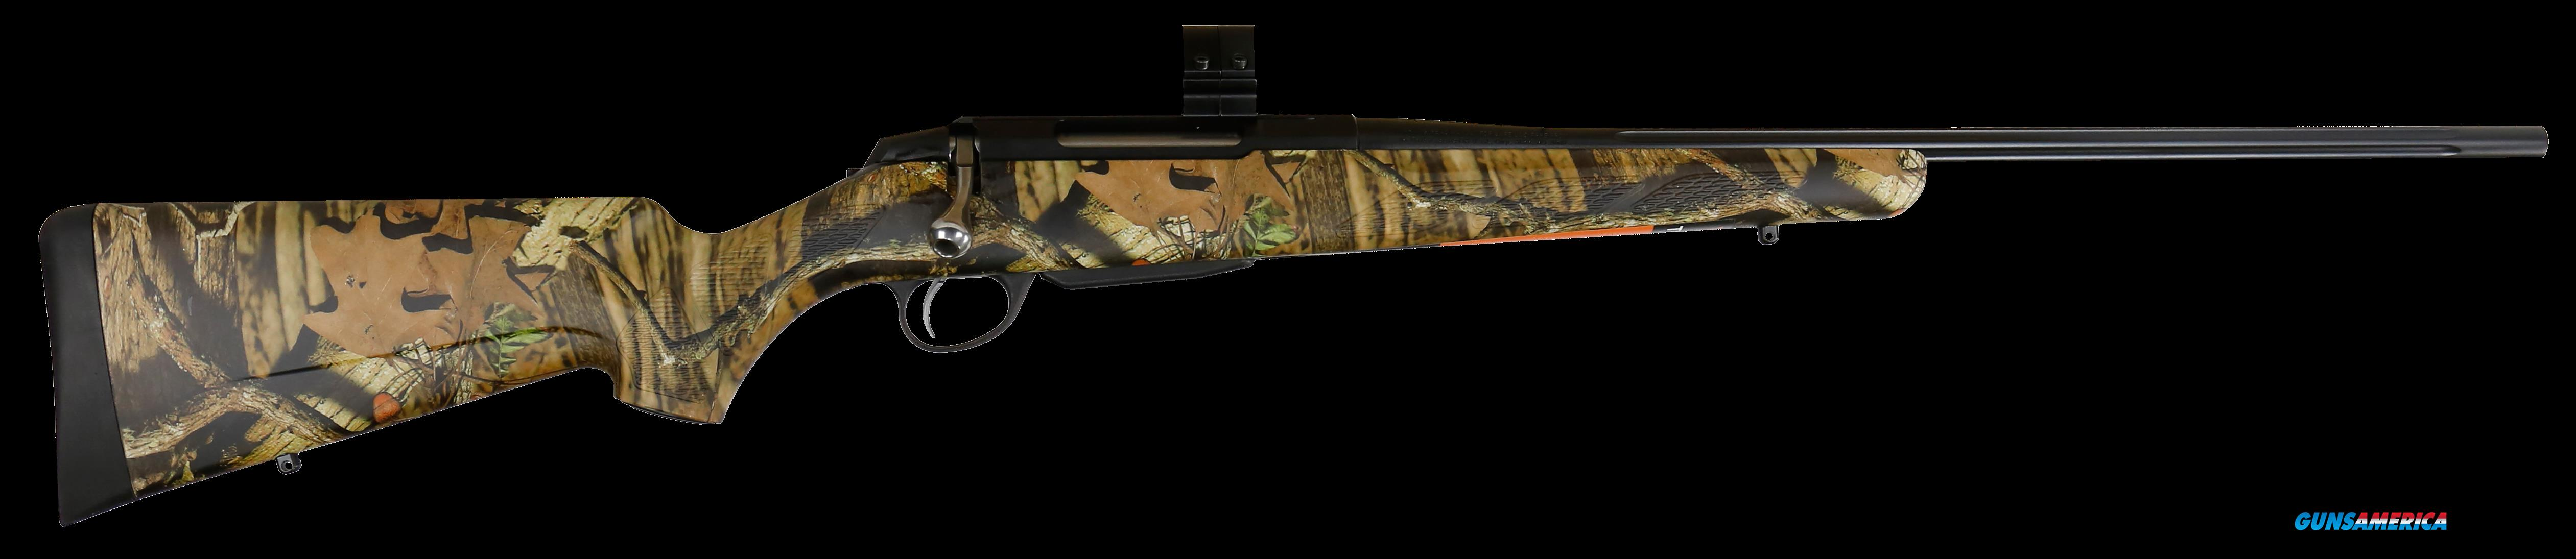 "Tikka T3 JRTX031 T3 Lite Bolt 223 Rem 20"" Fluted 4+1 Synthetic Mossy Oak Break-Up Stk Blued  Guns > Rifles > TU Misc Rifles"